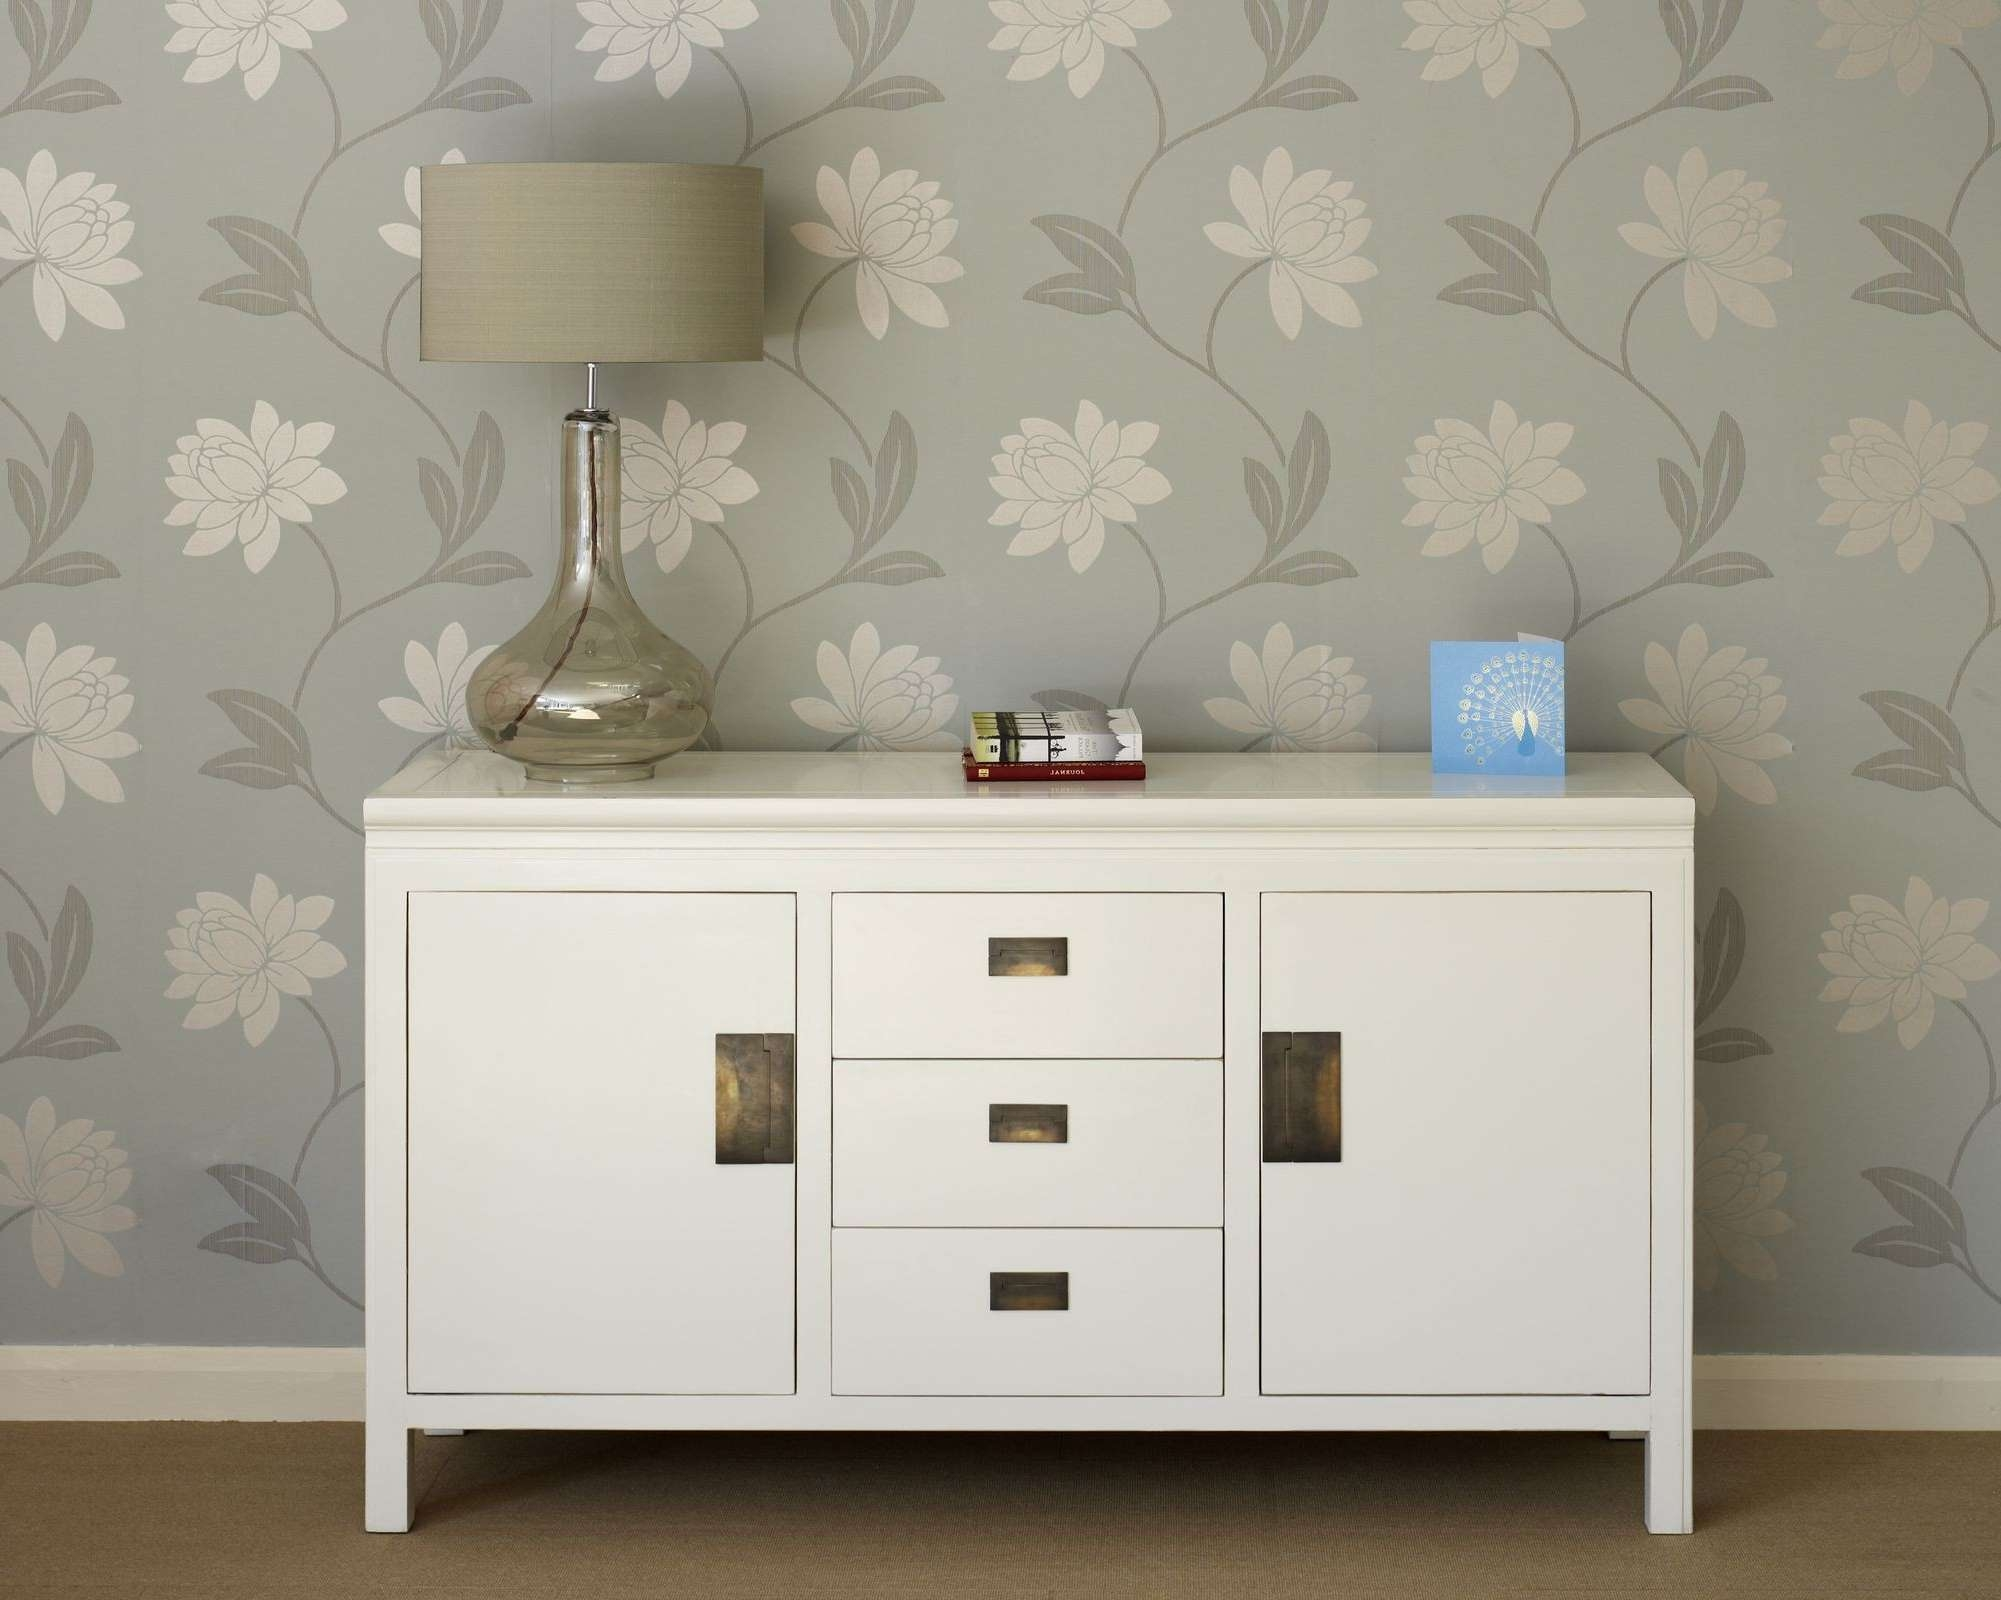 Oriental White Lacquer Sideboards – Shanxi With Regard To Large White Sideboards (View 13 of 20)